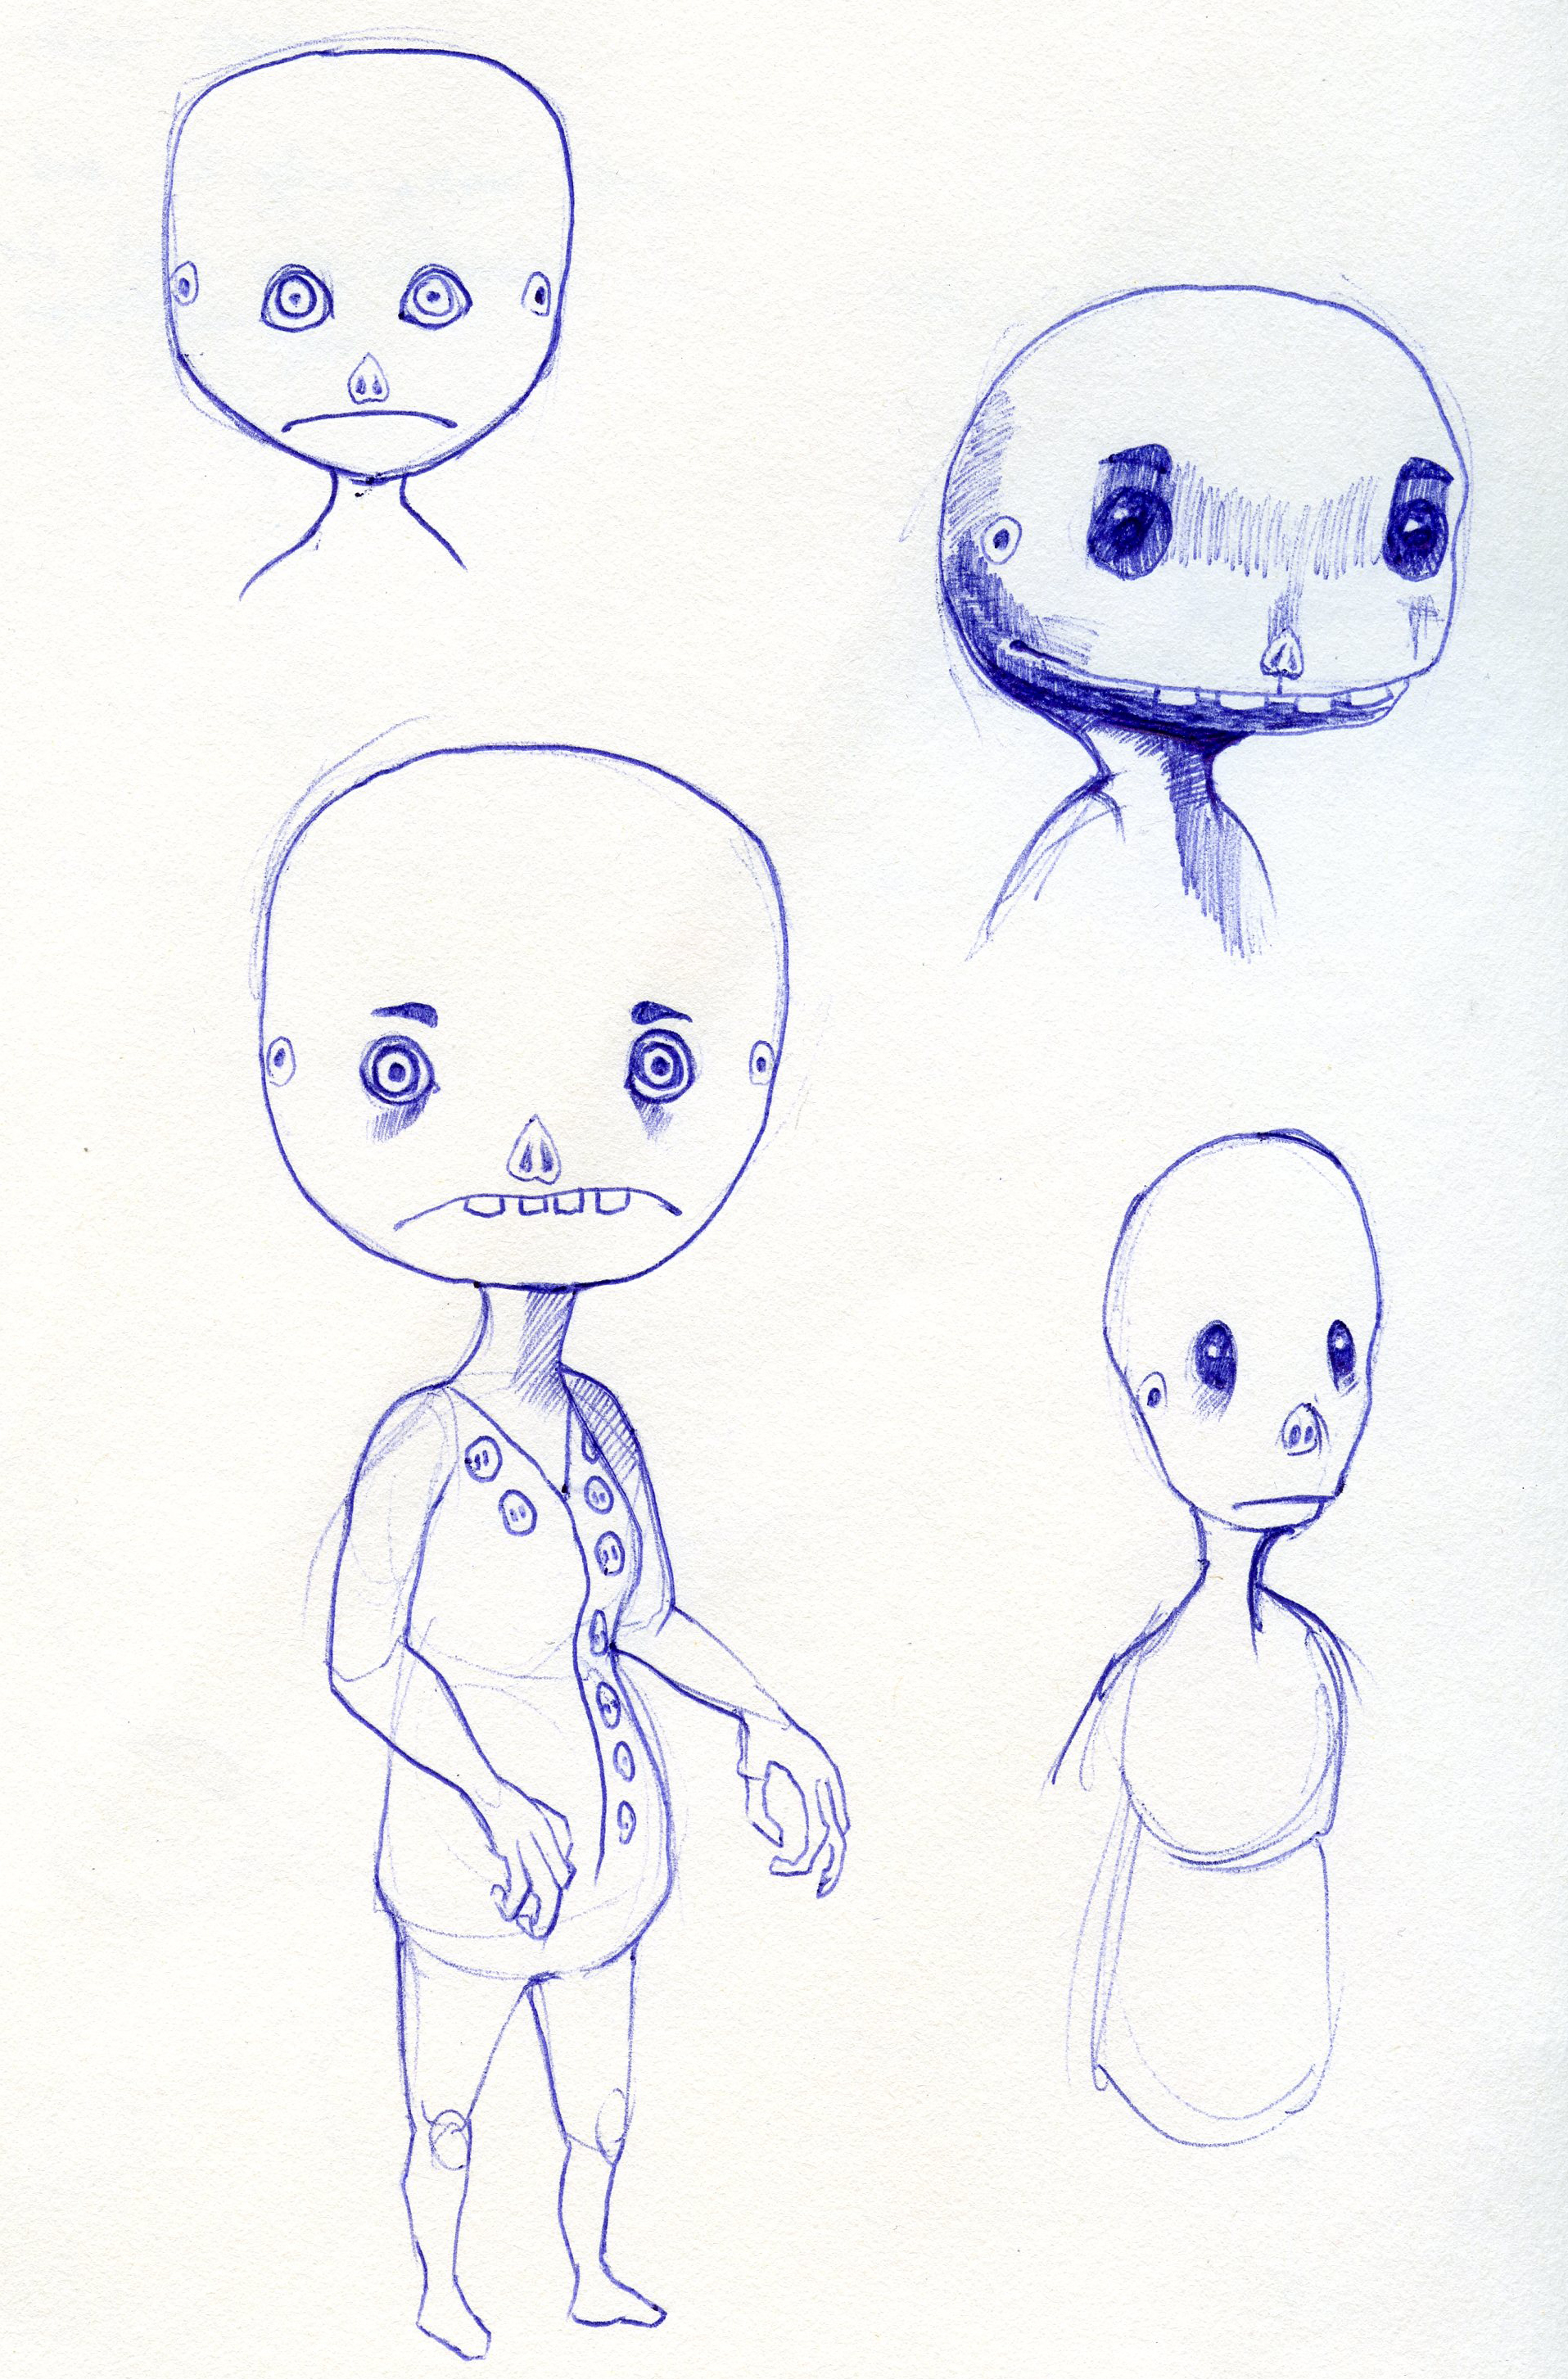 Concept art: The Ghoul